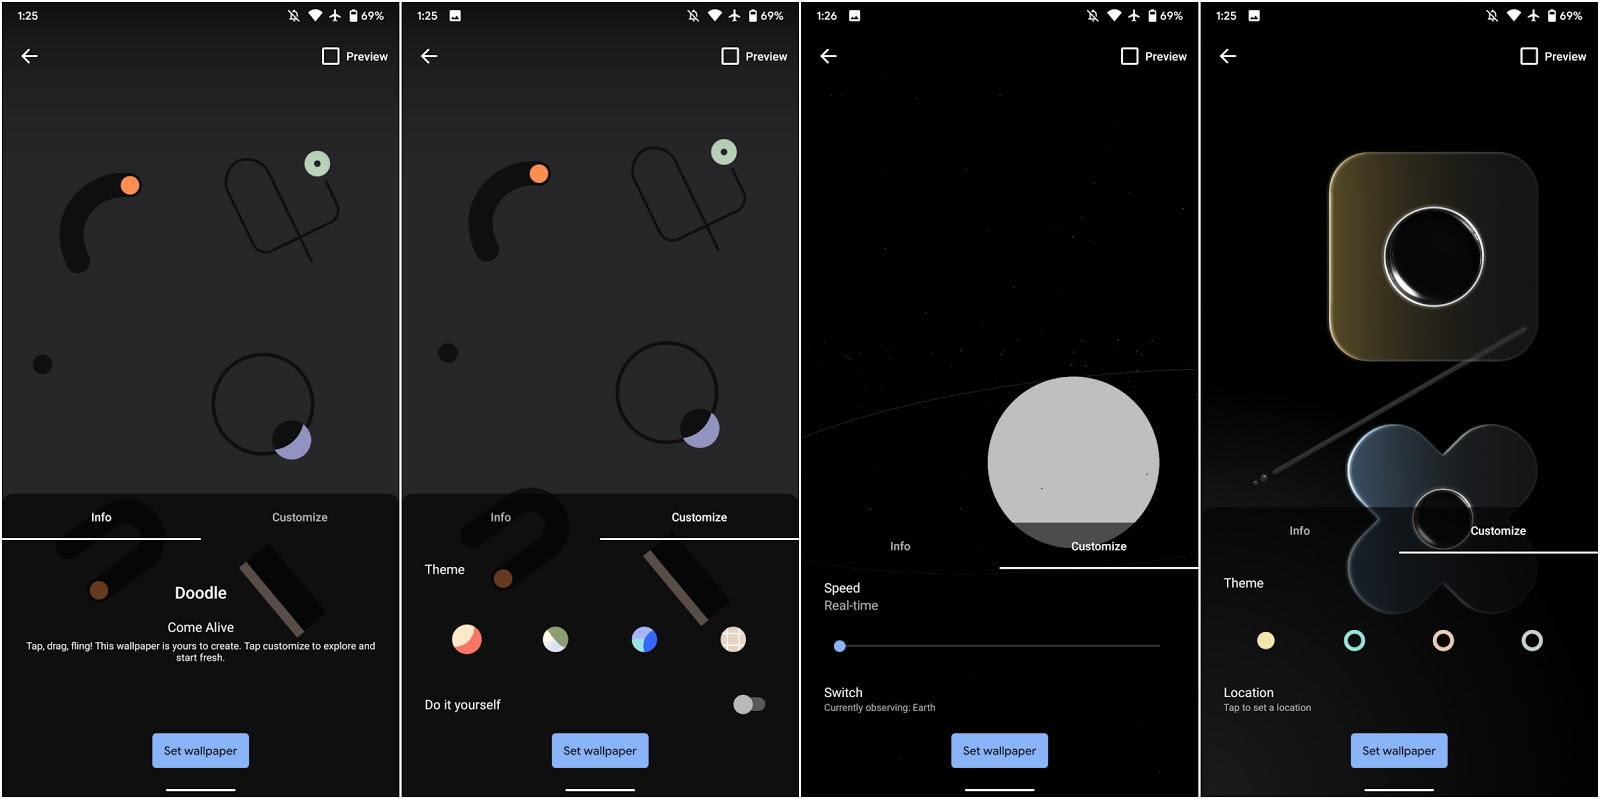 Apk Pixel 4 Live Wallpapers Are Available For Download